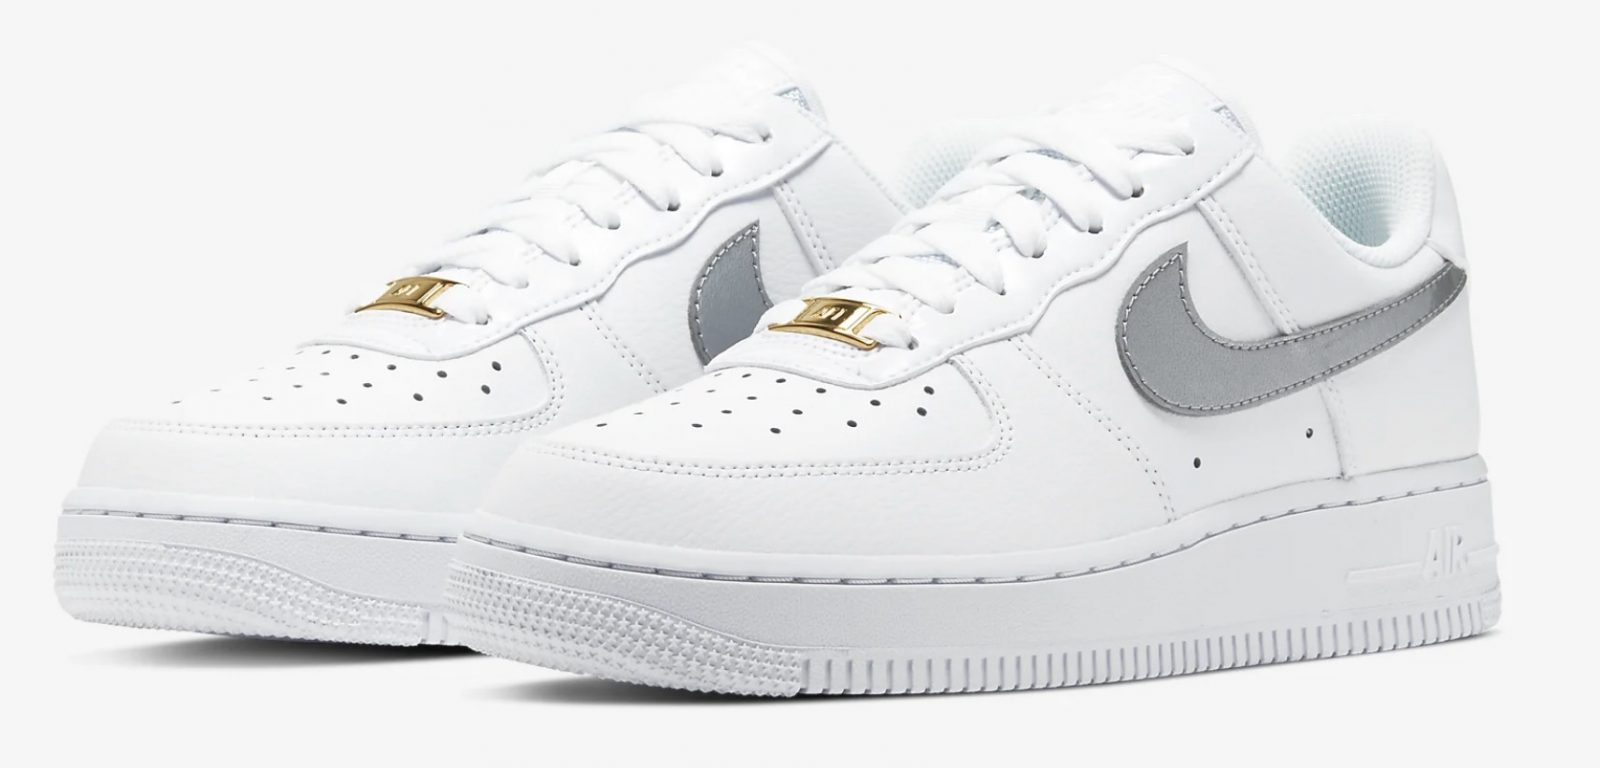 CT2549-100 Nike Air Force 1 Silver Gold